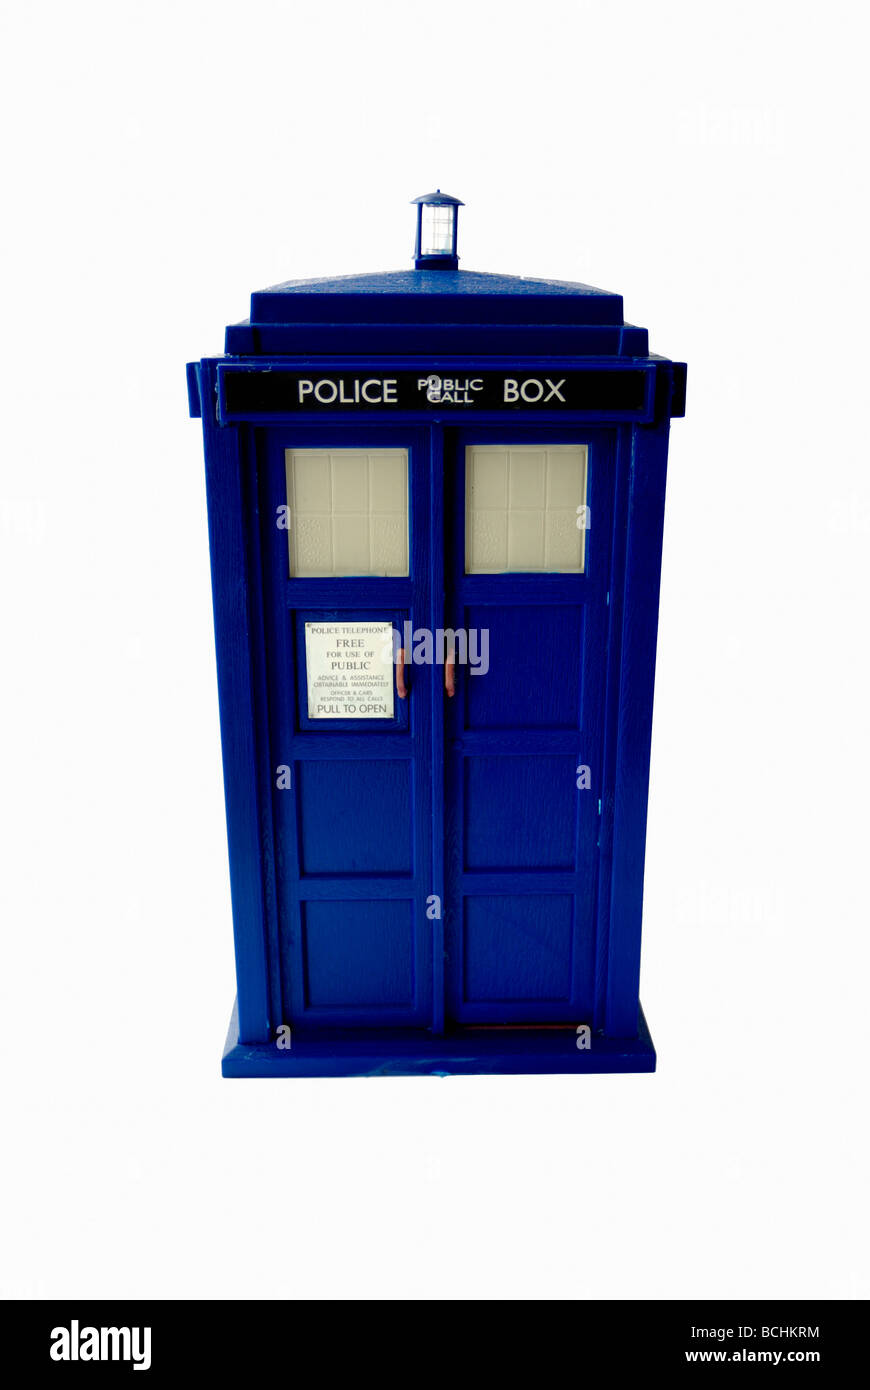 Dr Who Tardis toy - Stock Image